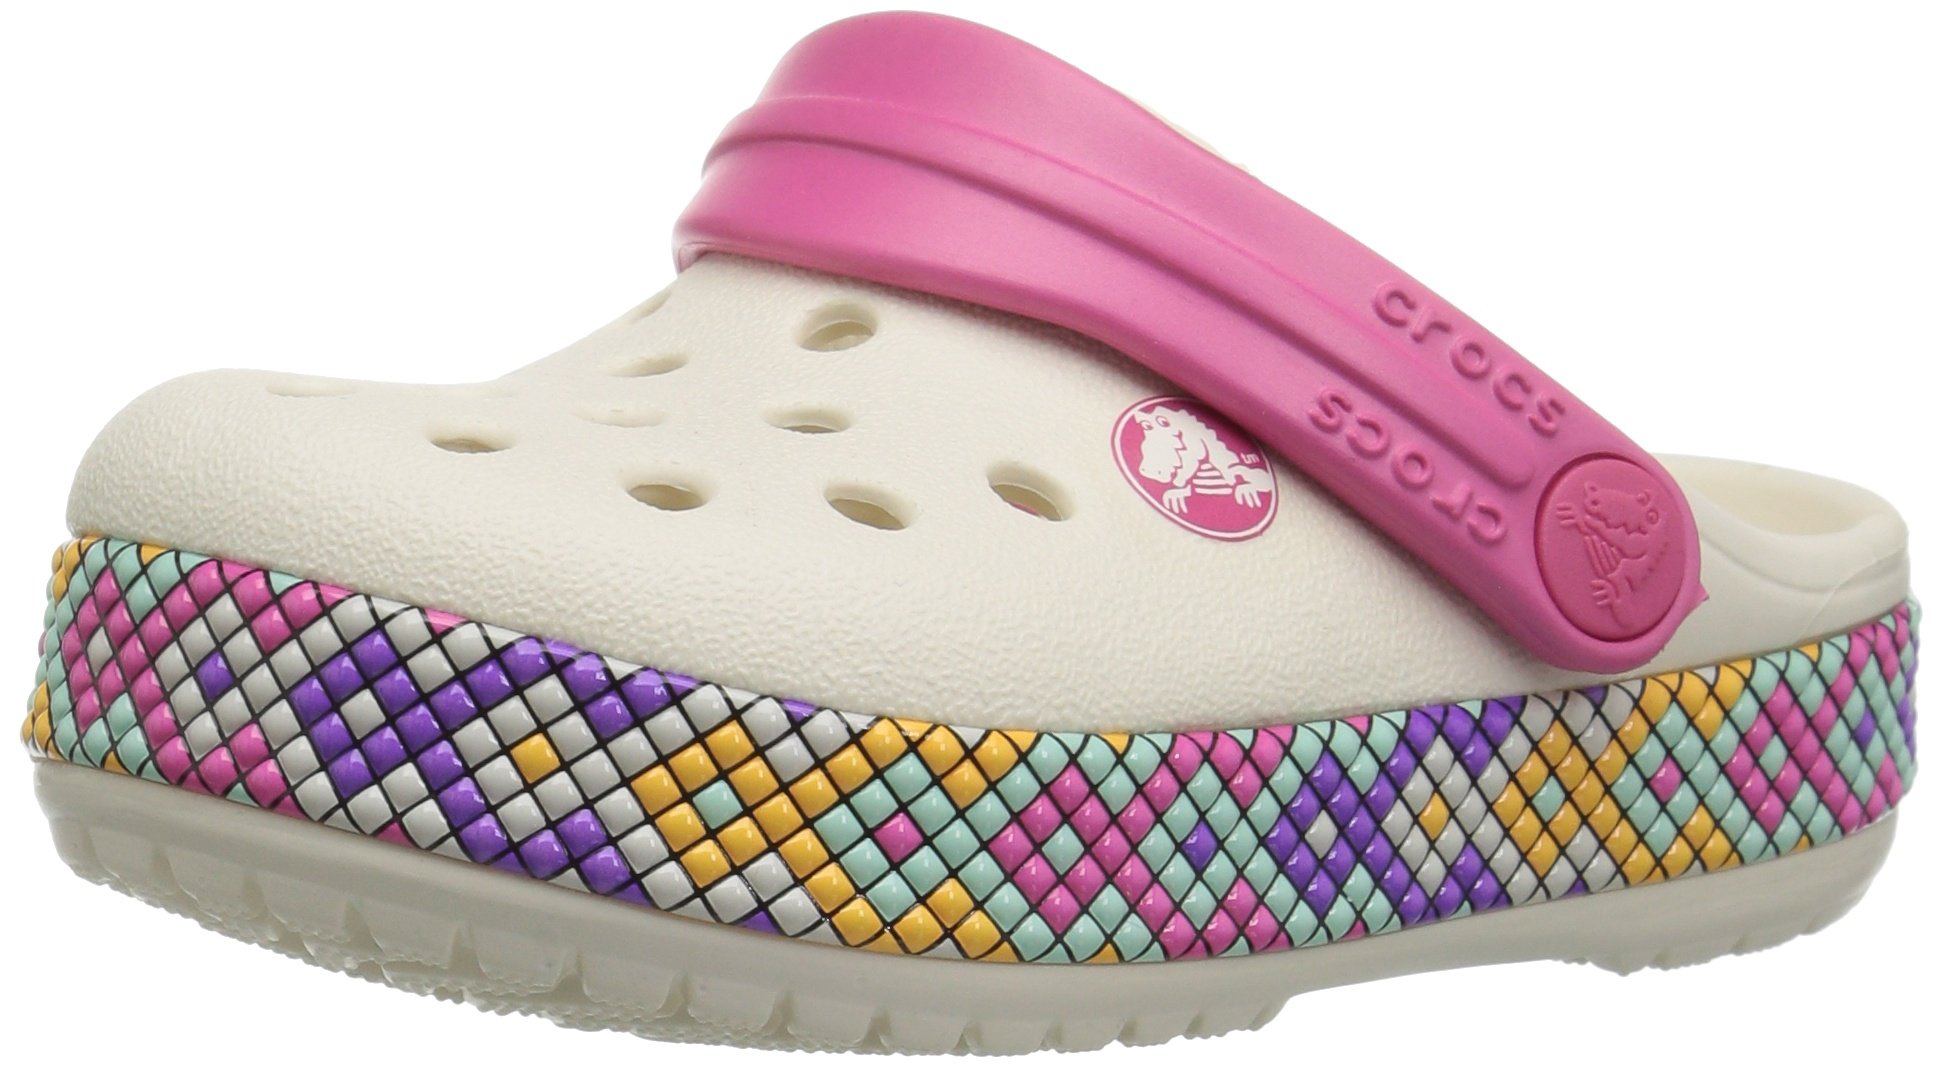 Crocband Gallery Clog K Oyster, 7 M US Toddler